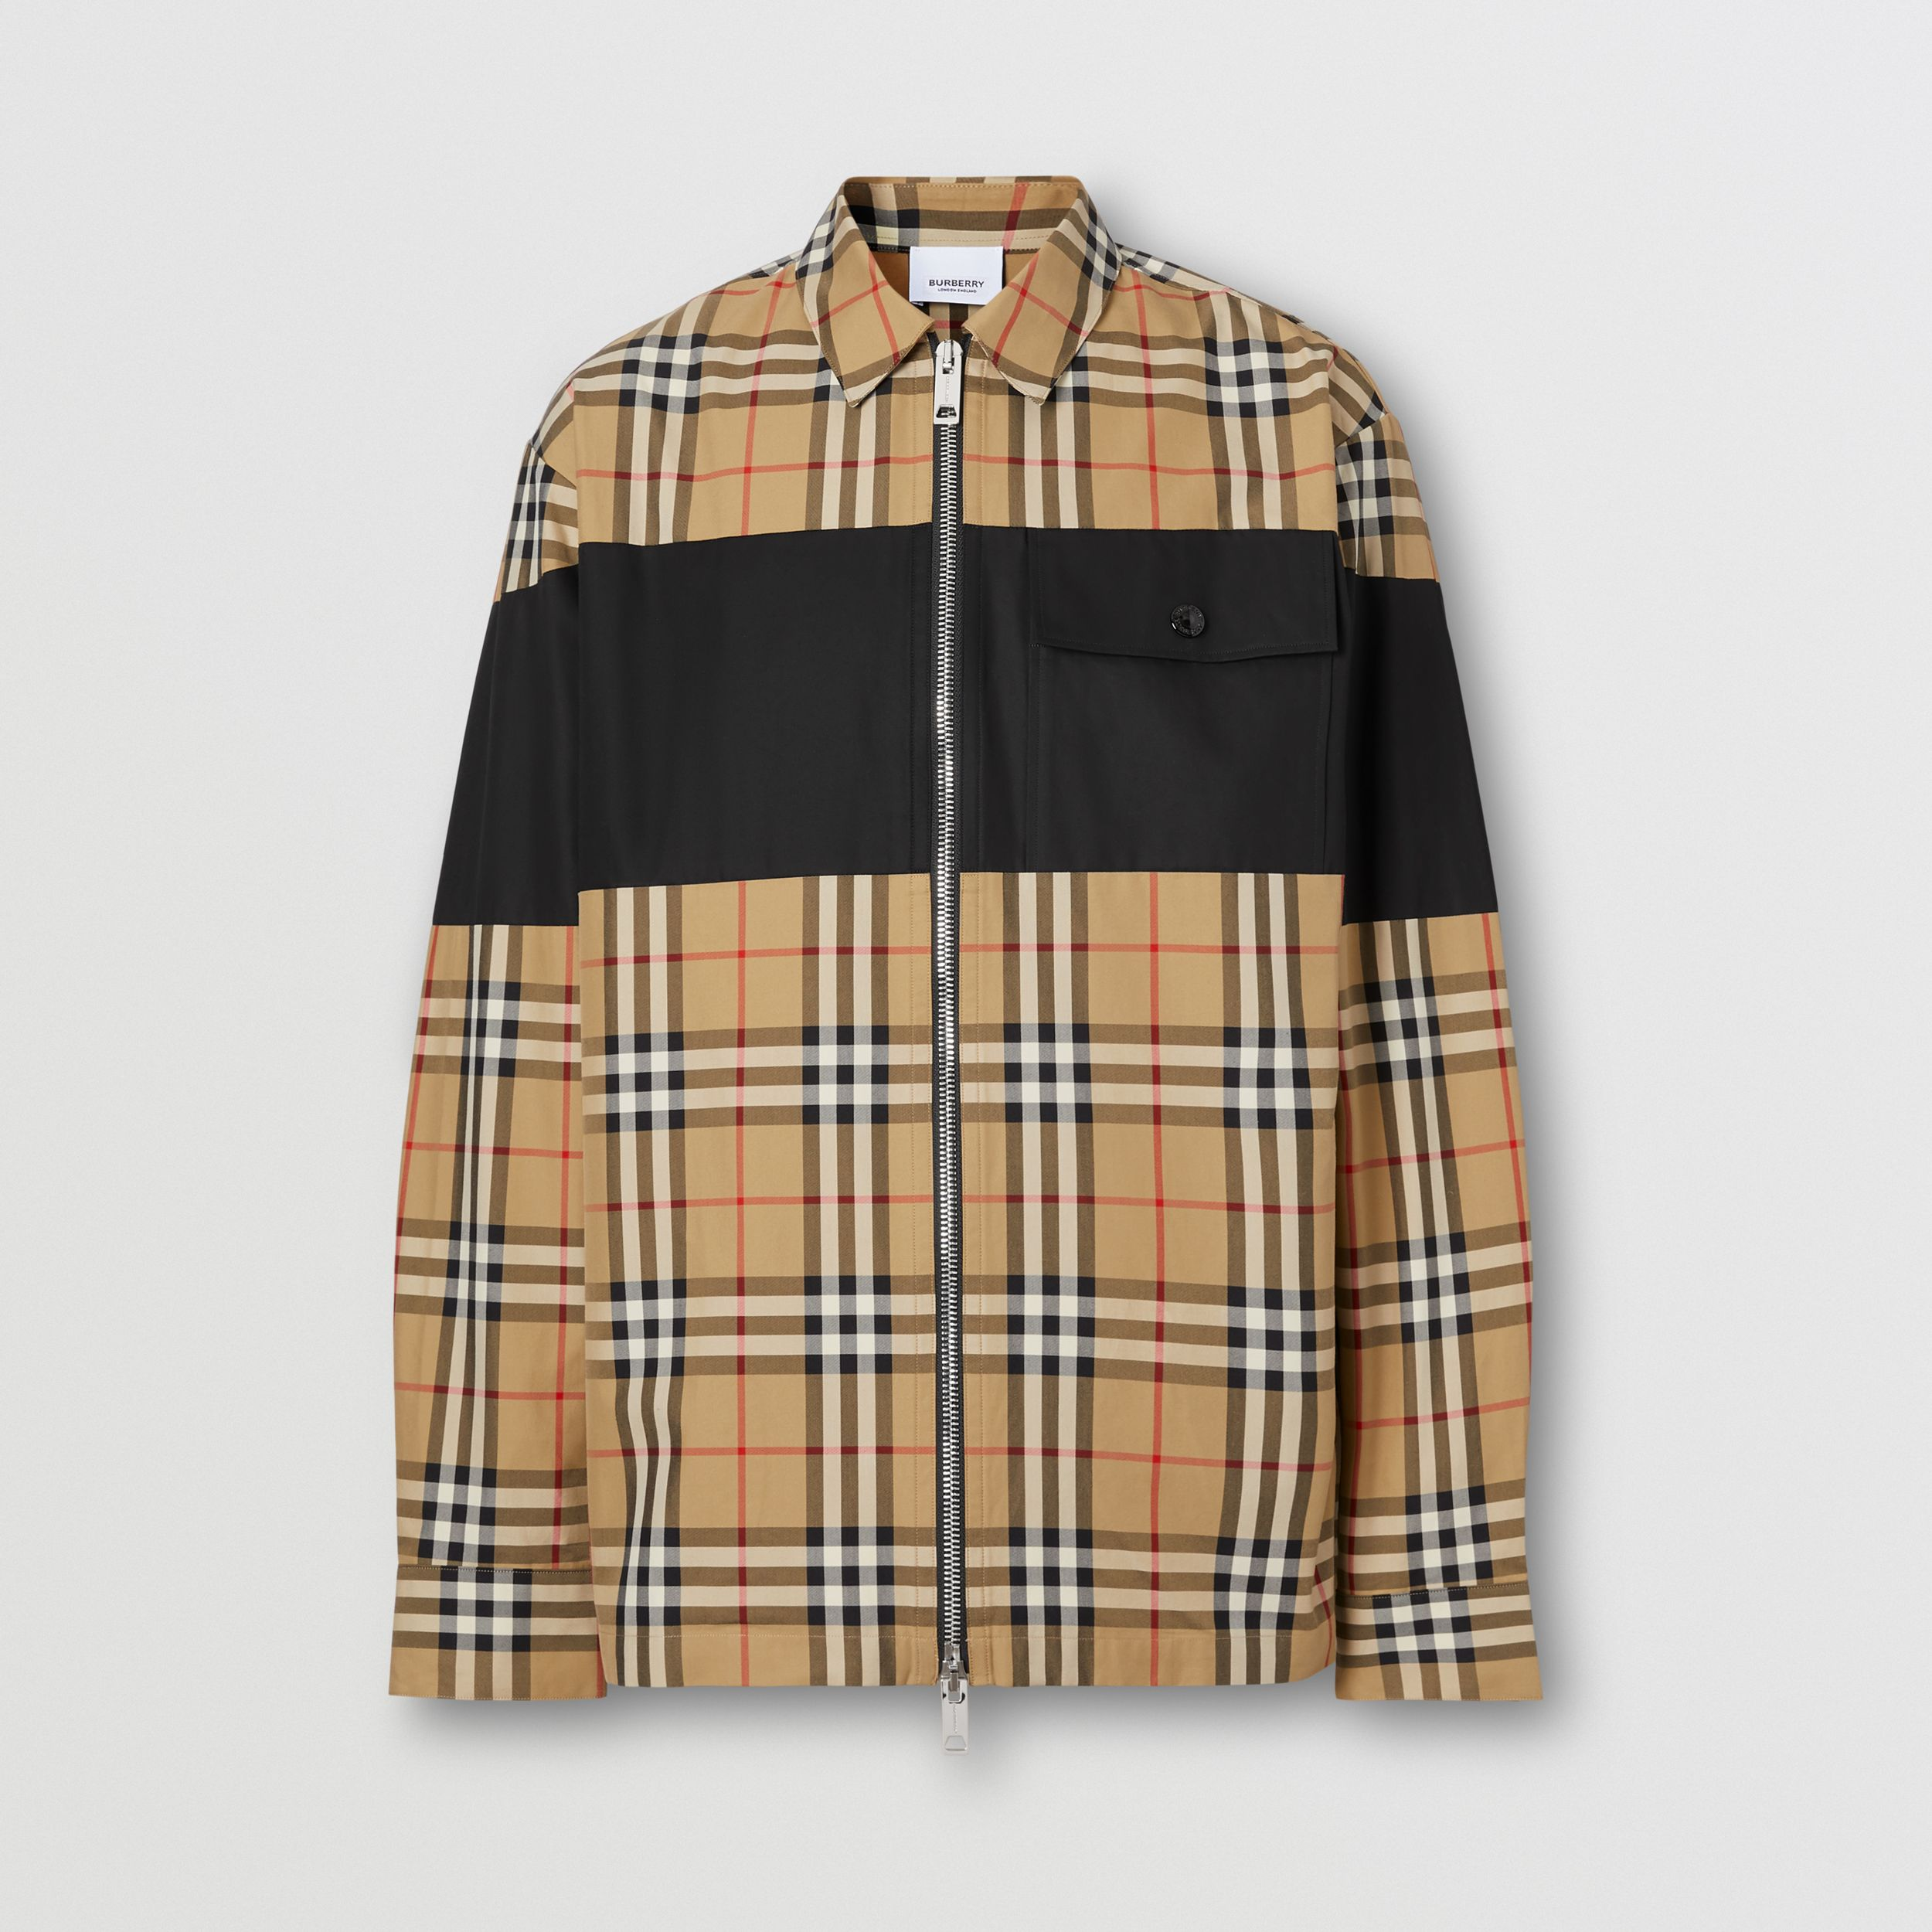 Contrast Panel Check Cotton Shirt in Archive Beige - Men | Burberry - 4